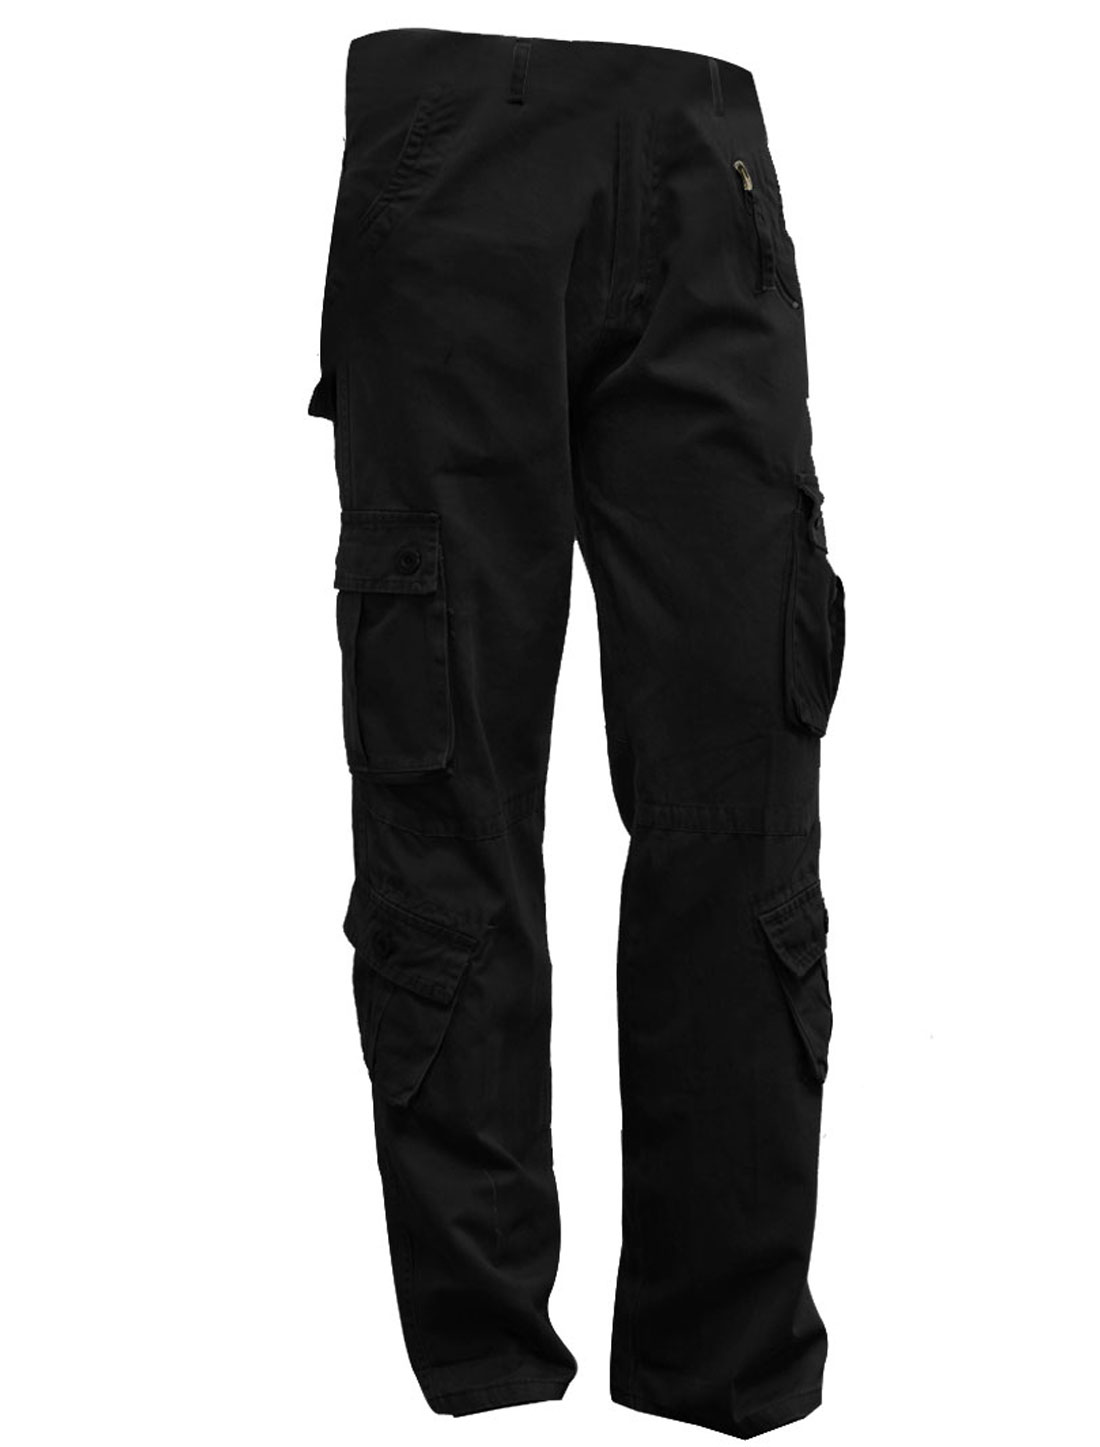 Mens Black Six Pockets Front Casual Full Length Cargo Pants W34